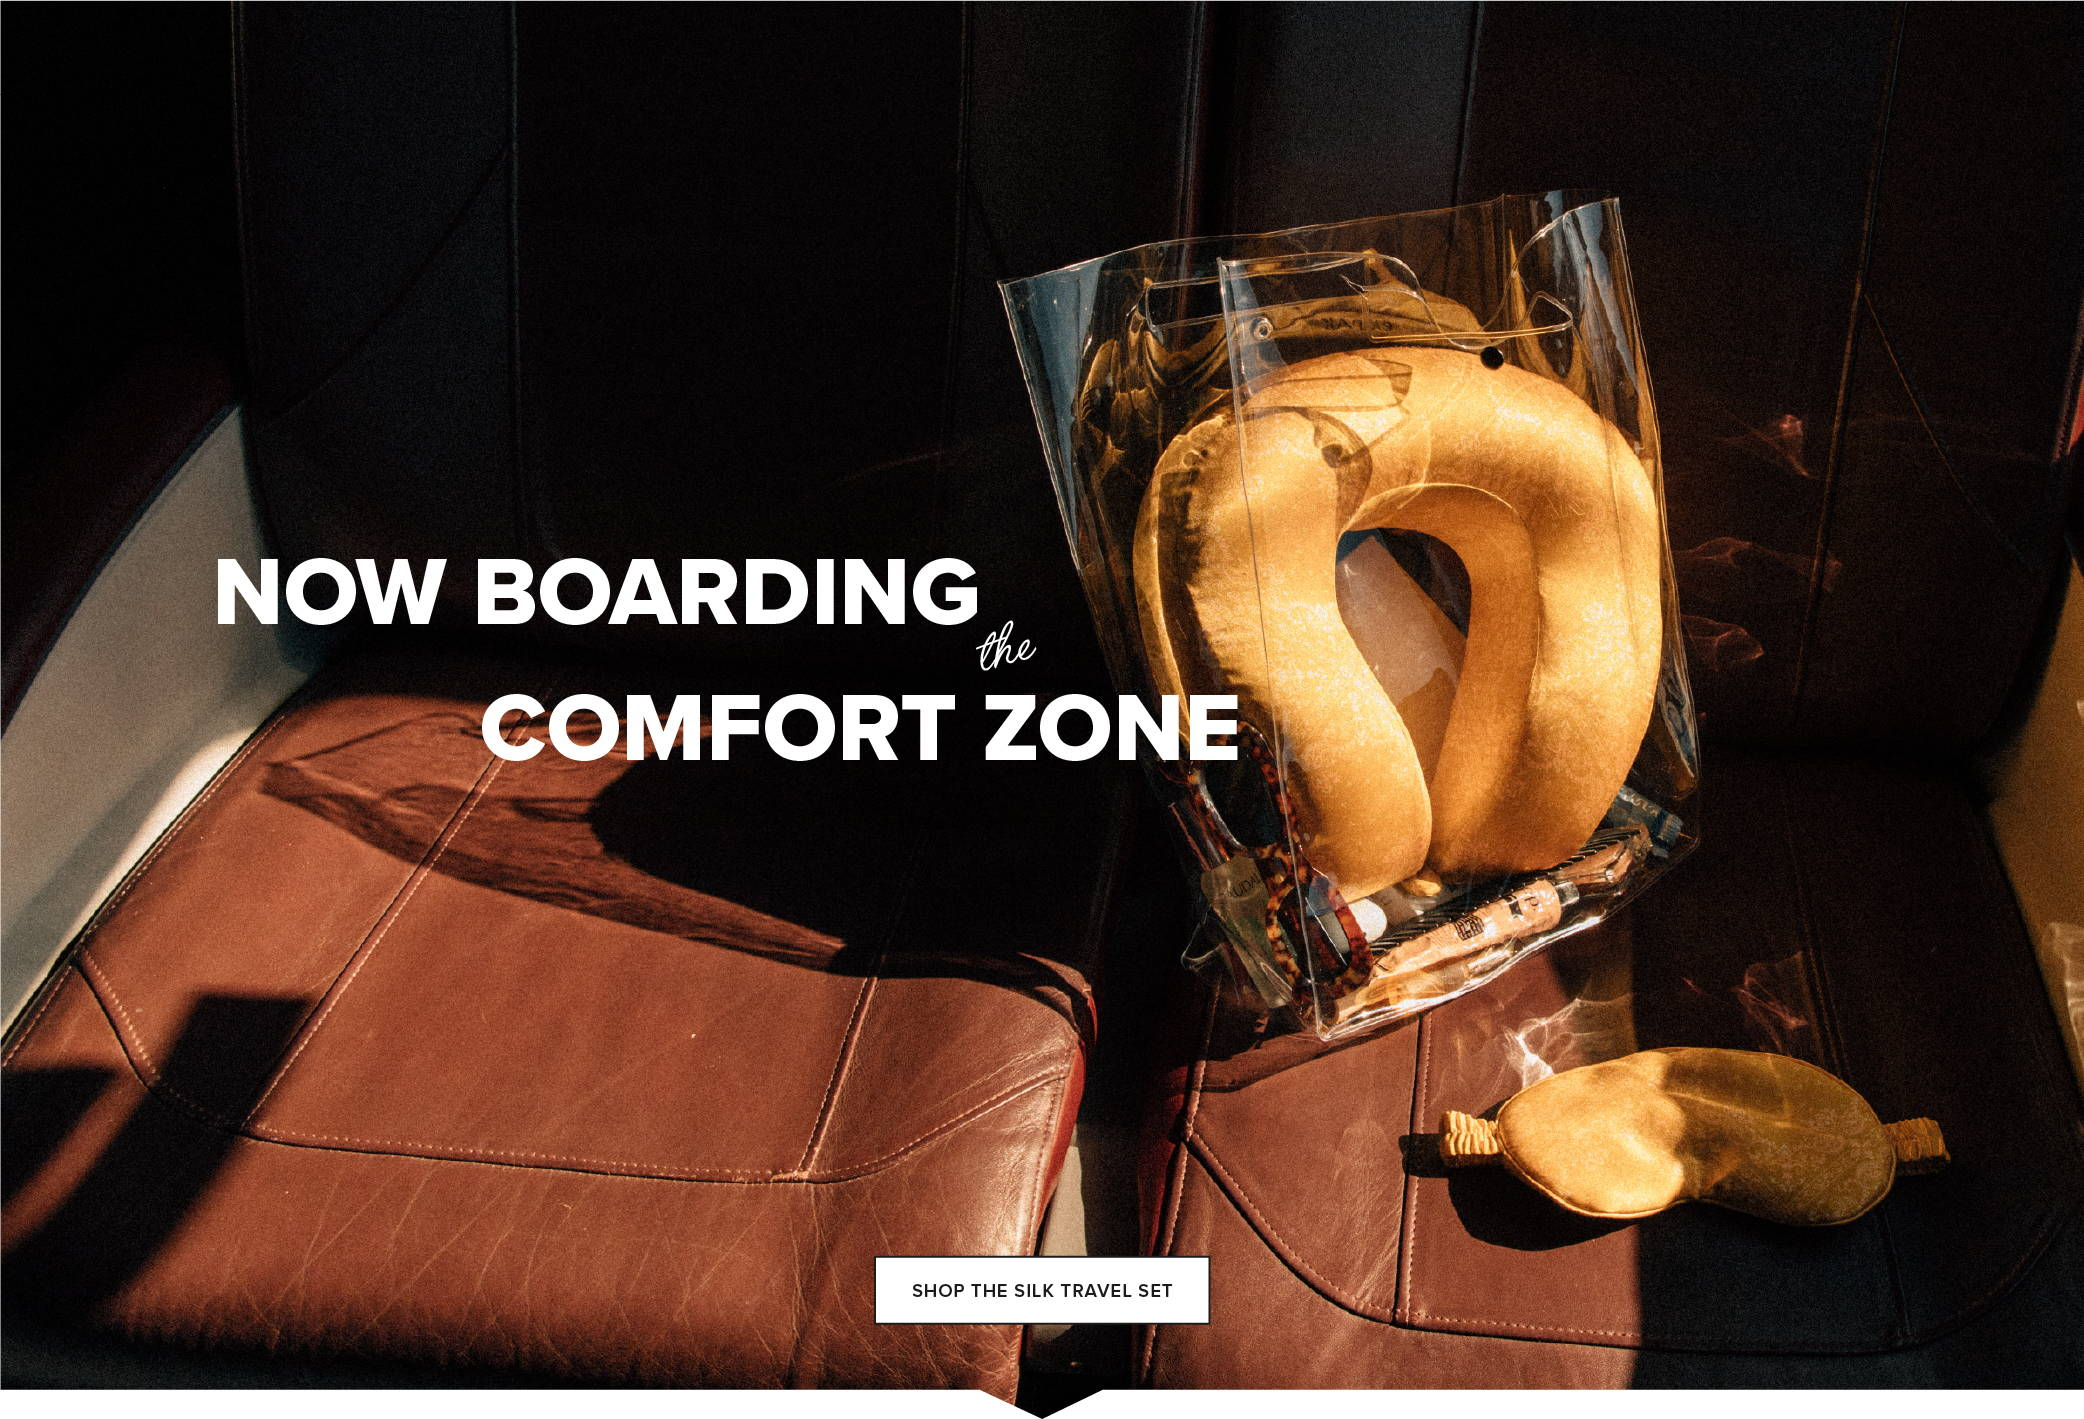 Now Boarding the Comfort Zone